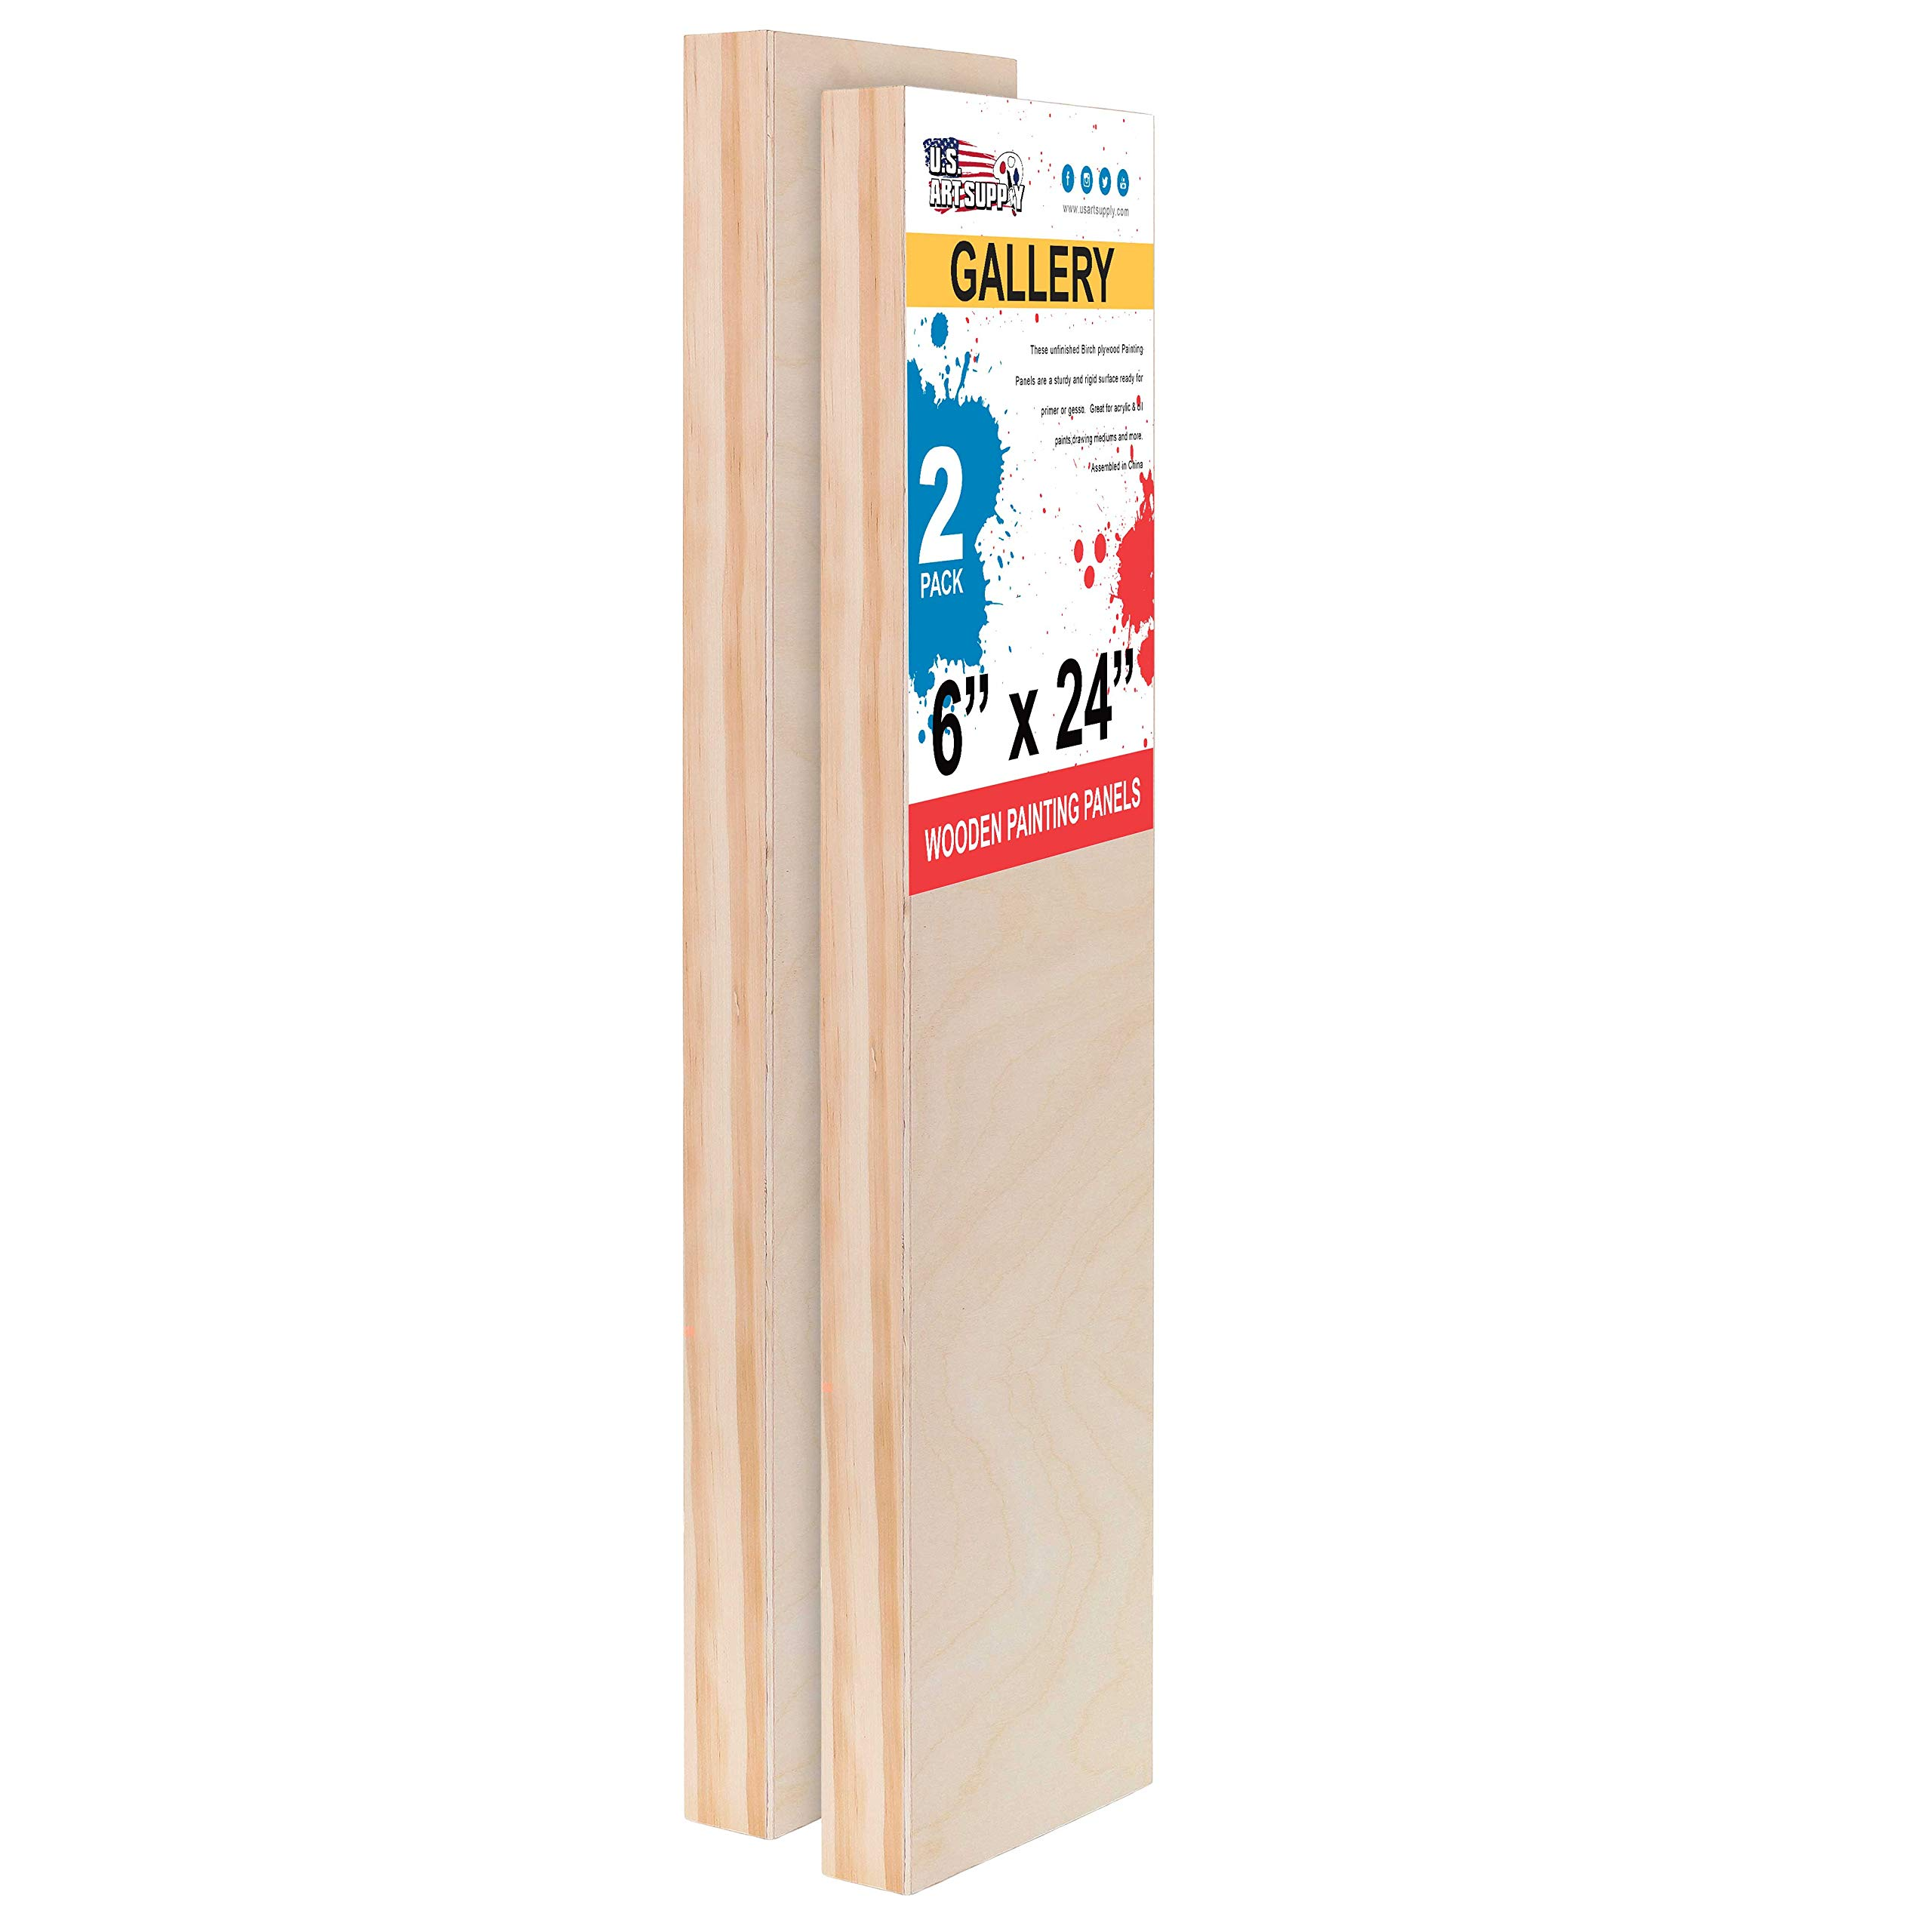 U.S. Art Supply 6'' x 24'' Birch Wood Paint Pouring Panel Boards, Gallery 1-1/2'' Deep Cradle (Pack of 2) - Artist Depth Wooden Wall Canvases - Painting Mixed-Media Craft, Acrylic, Oil, Encaustic by U.S. Art Supply